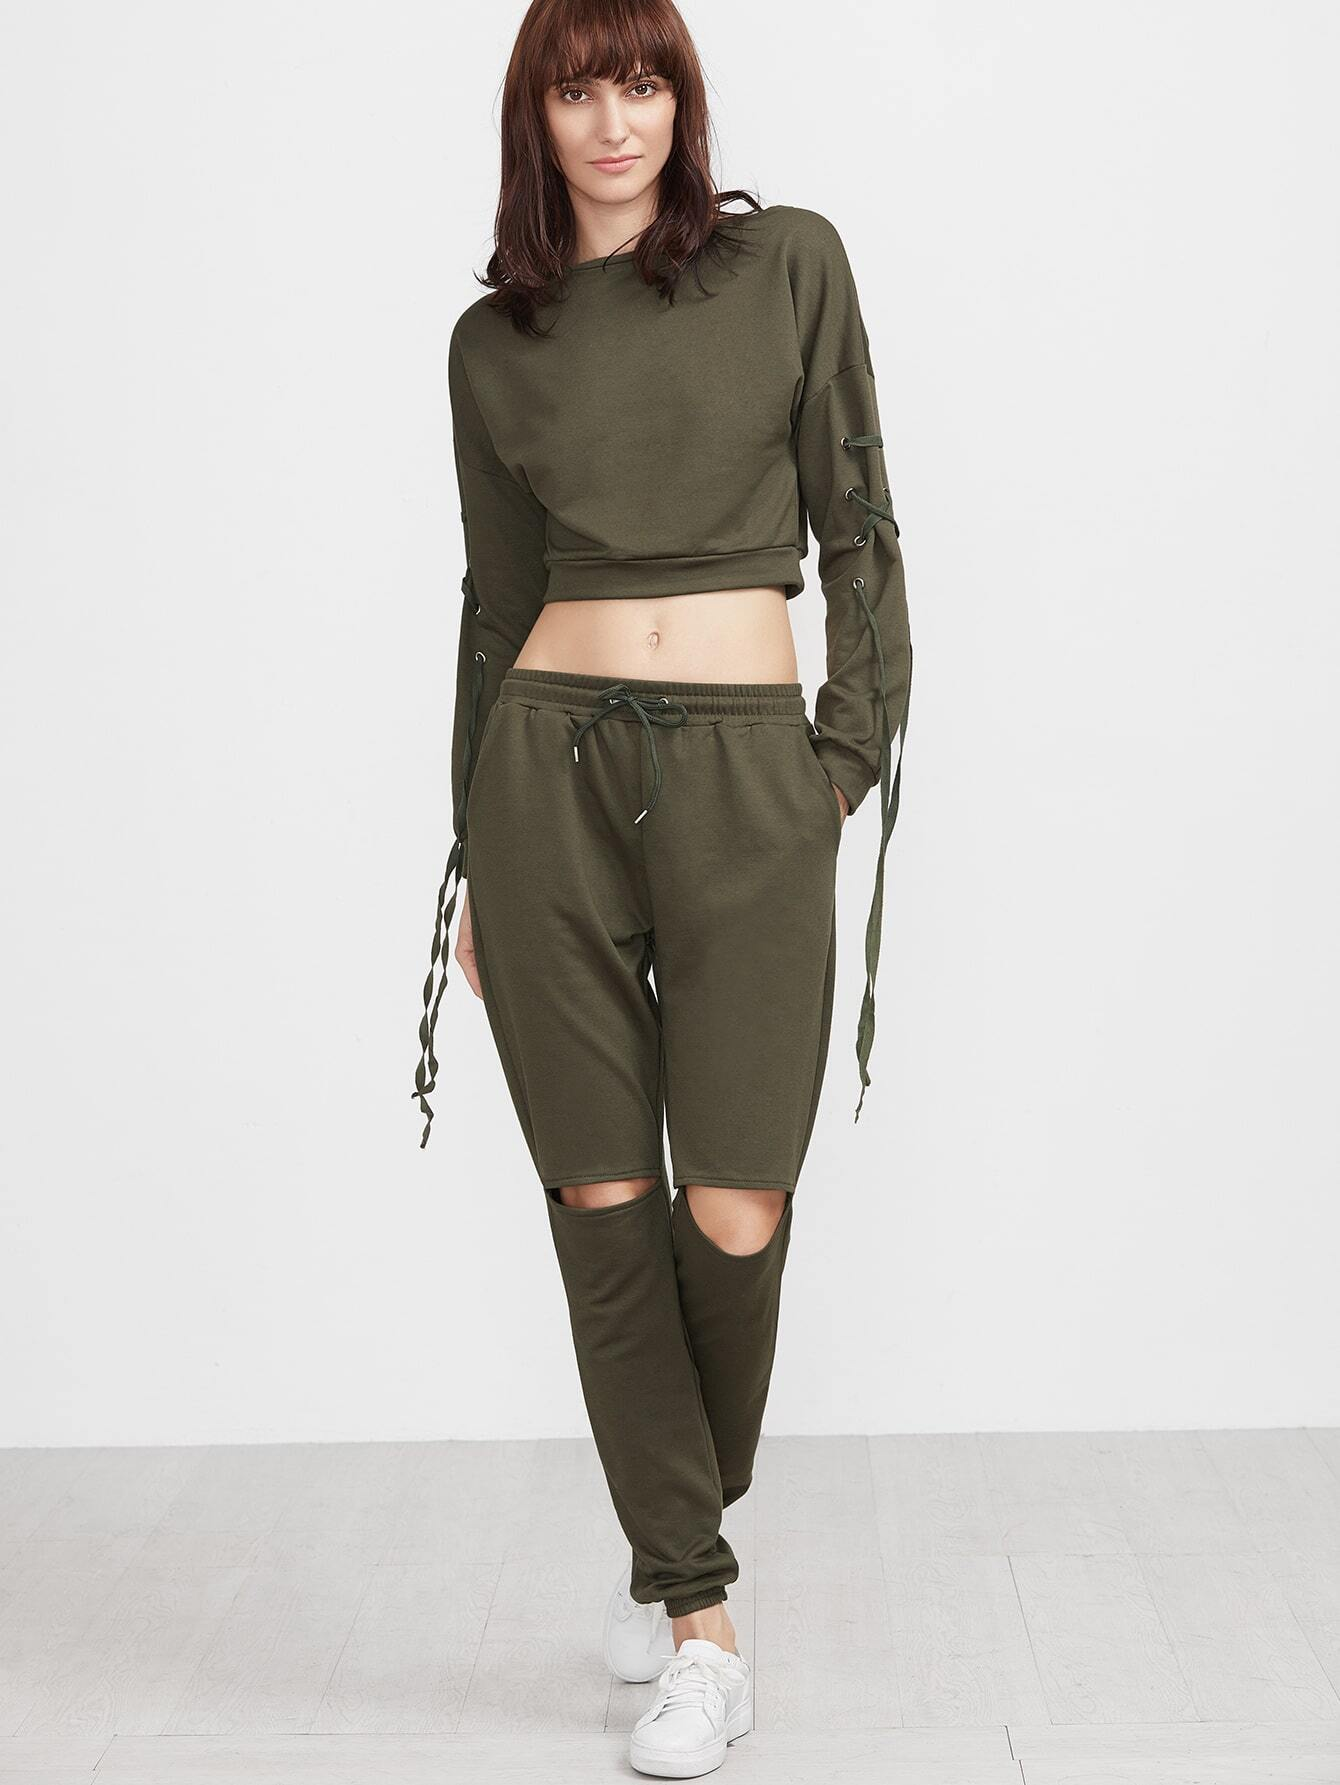 Free shipping BOTH ways on free people cropped military jacket military green, from our vast selection of styles. free people cropped military jacket military green items found. Nikki Femme Crop Top. $ Like. Free People Movement. Nikki Femme Crop Top. .